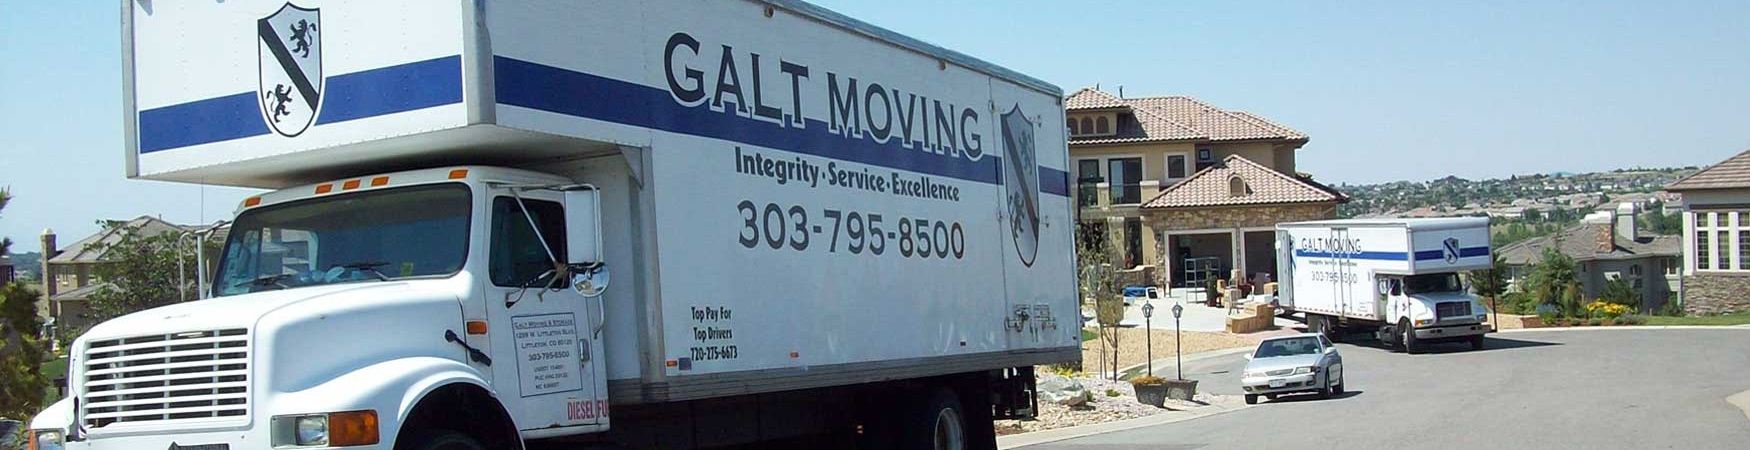 Galt Moving reviews | Home Services at 1299 W Littleton Blvd - Littleton CO